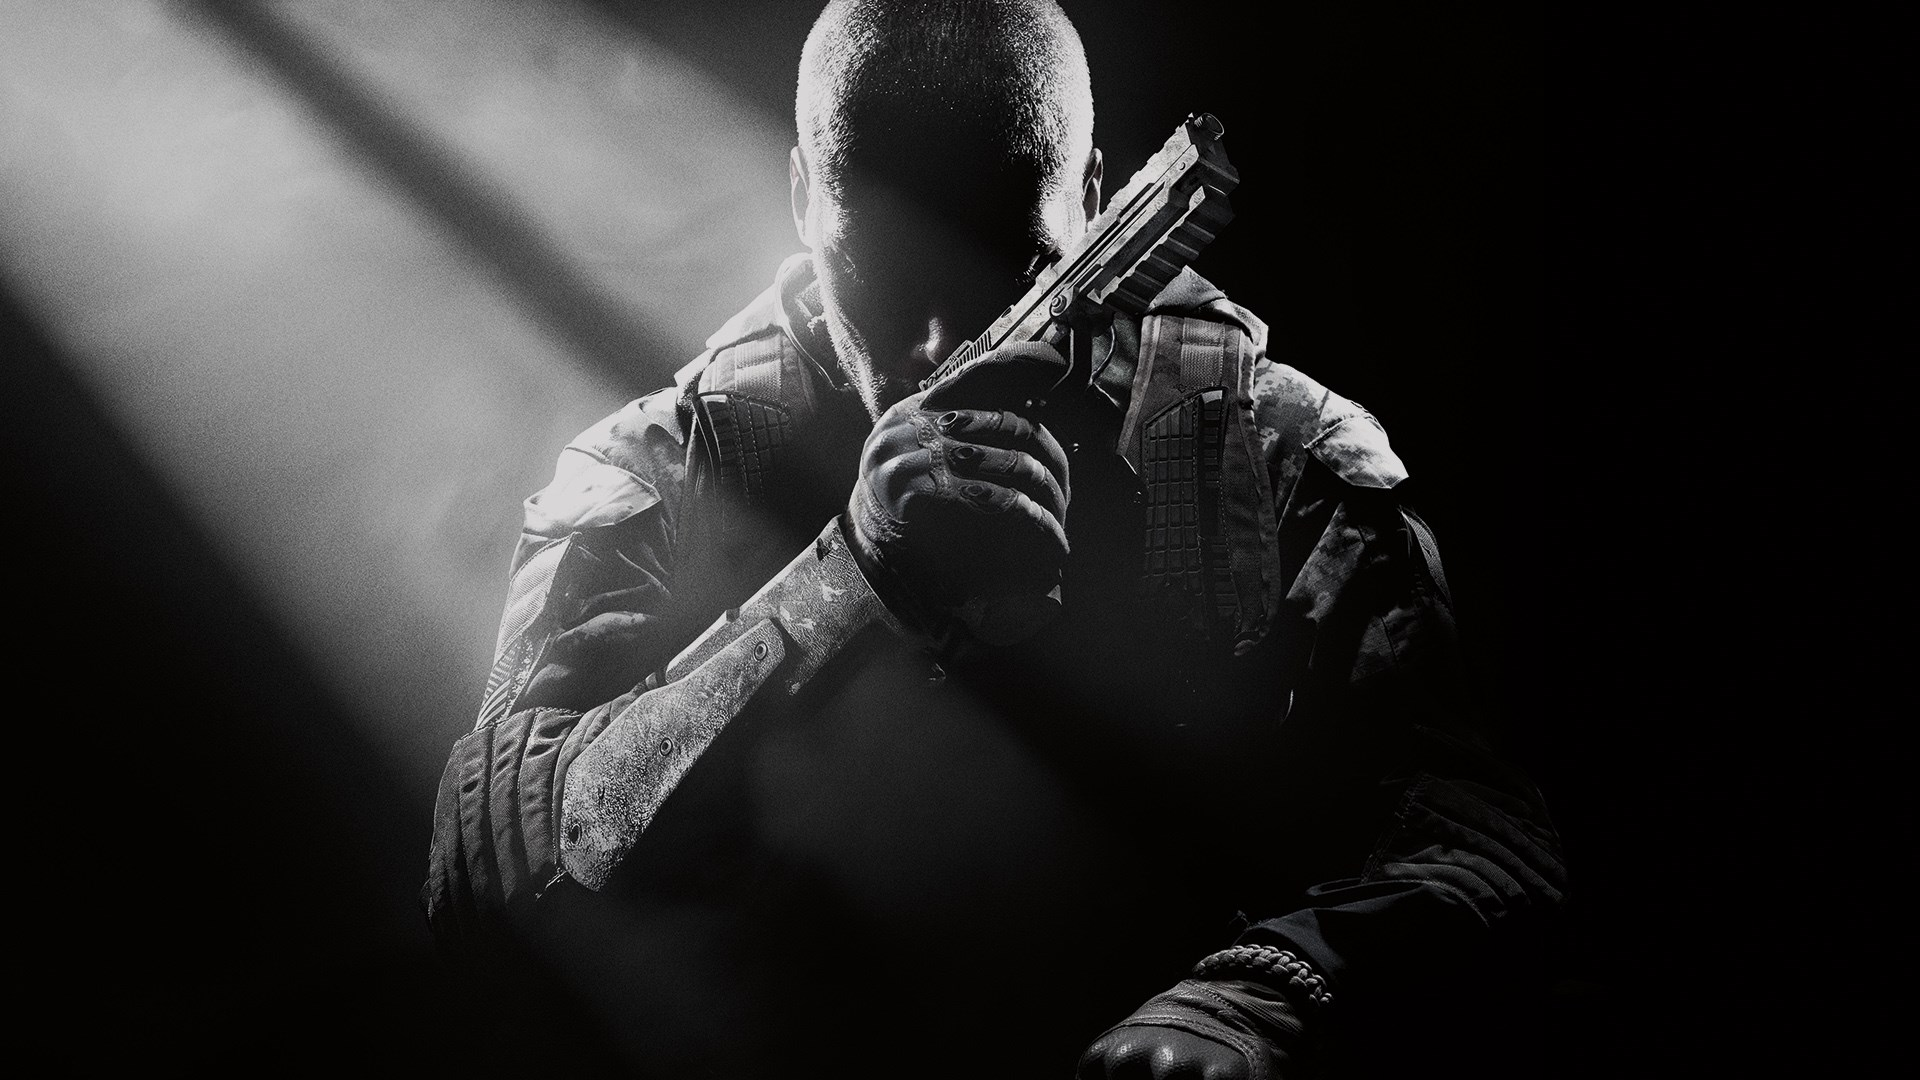 Call Of Duty Black Ops 2020 Title Card Has Seemingly Leaked